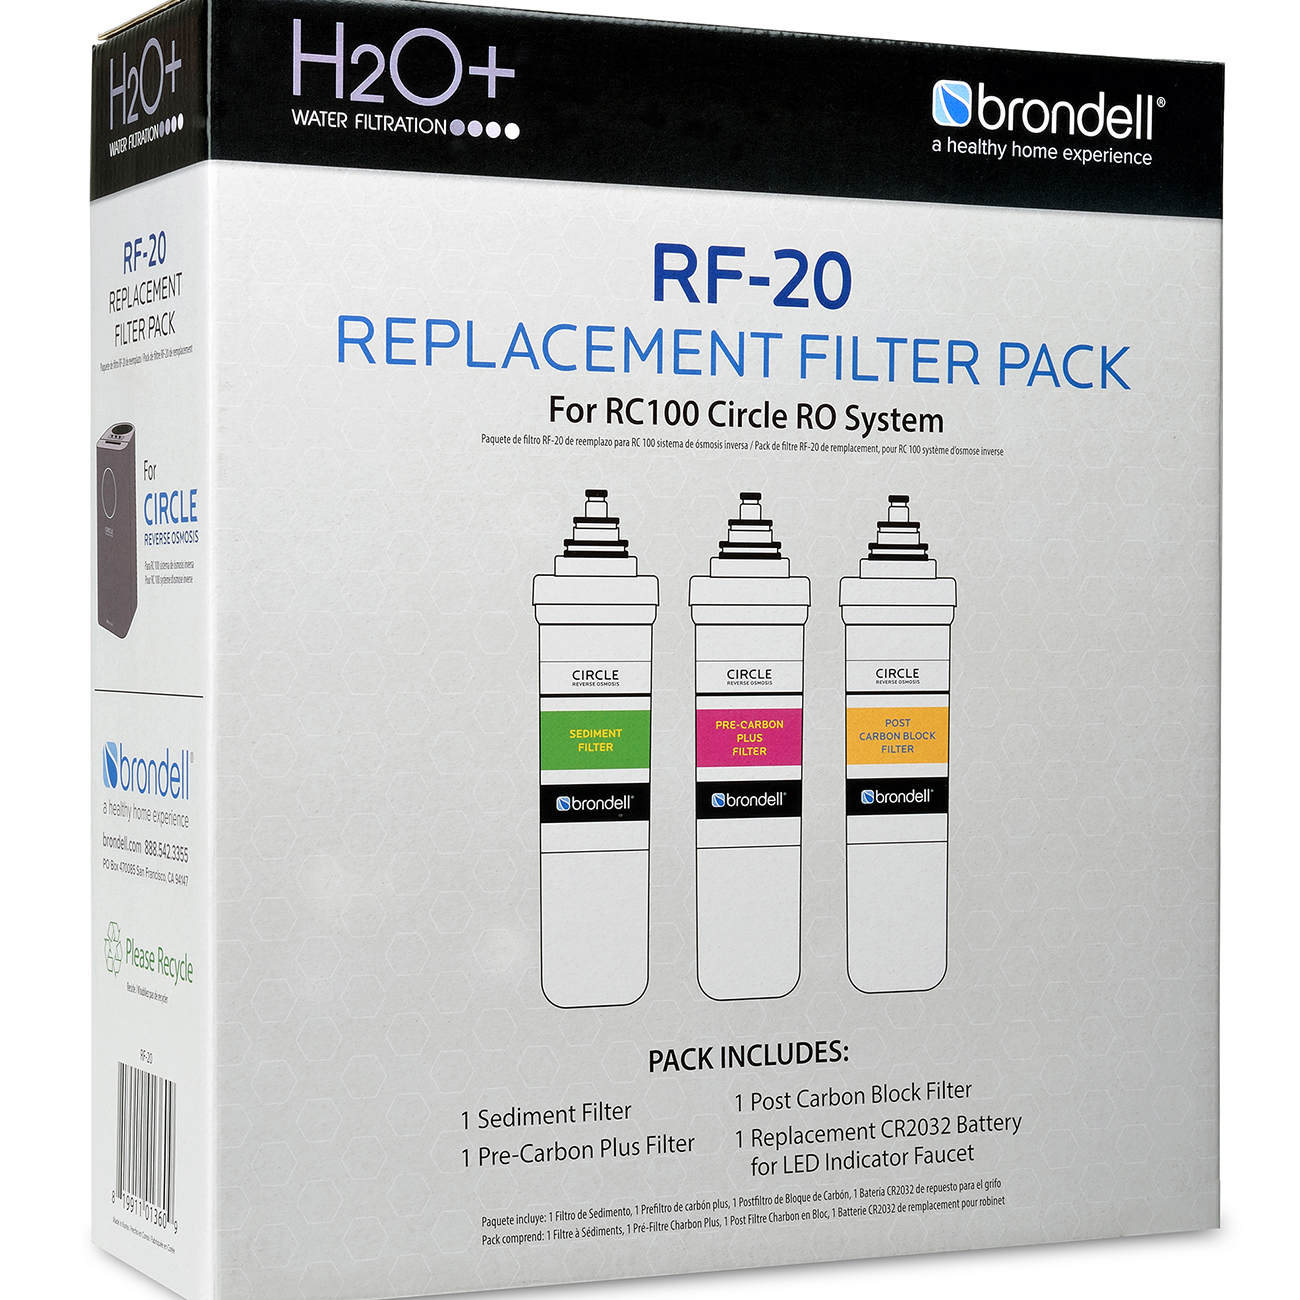 Brondell H2O+ Circle Reverse Osmosis Triple Filter Replacement Pack (RF-20) - Image 1